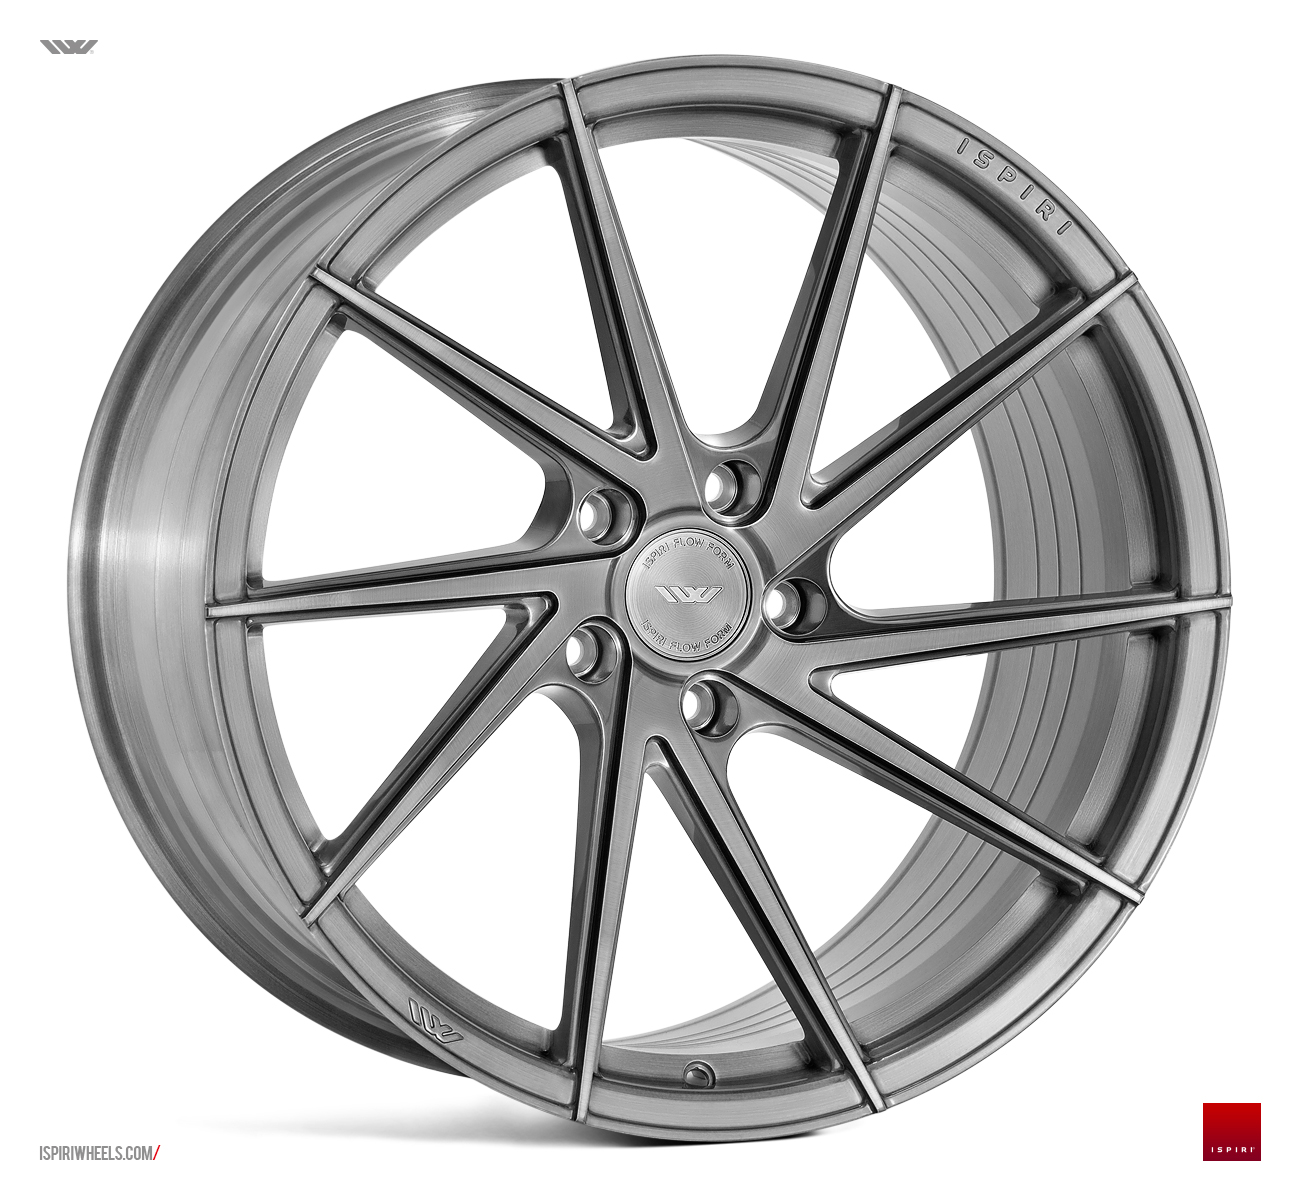 "NEW 20"" ISPIRI FFR1D MULTI-SPOKE DIRECTIONAL ALLOYS IN FULL BRUSHED CARBON TITANIUM, DEEPER CONCAVE 10.5"" REARS 5x120"